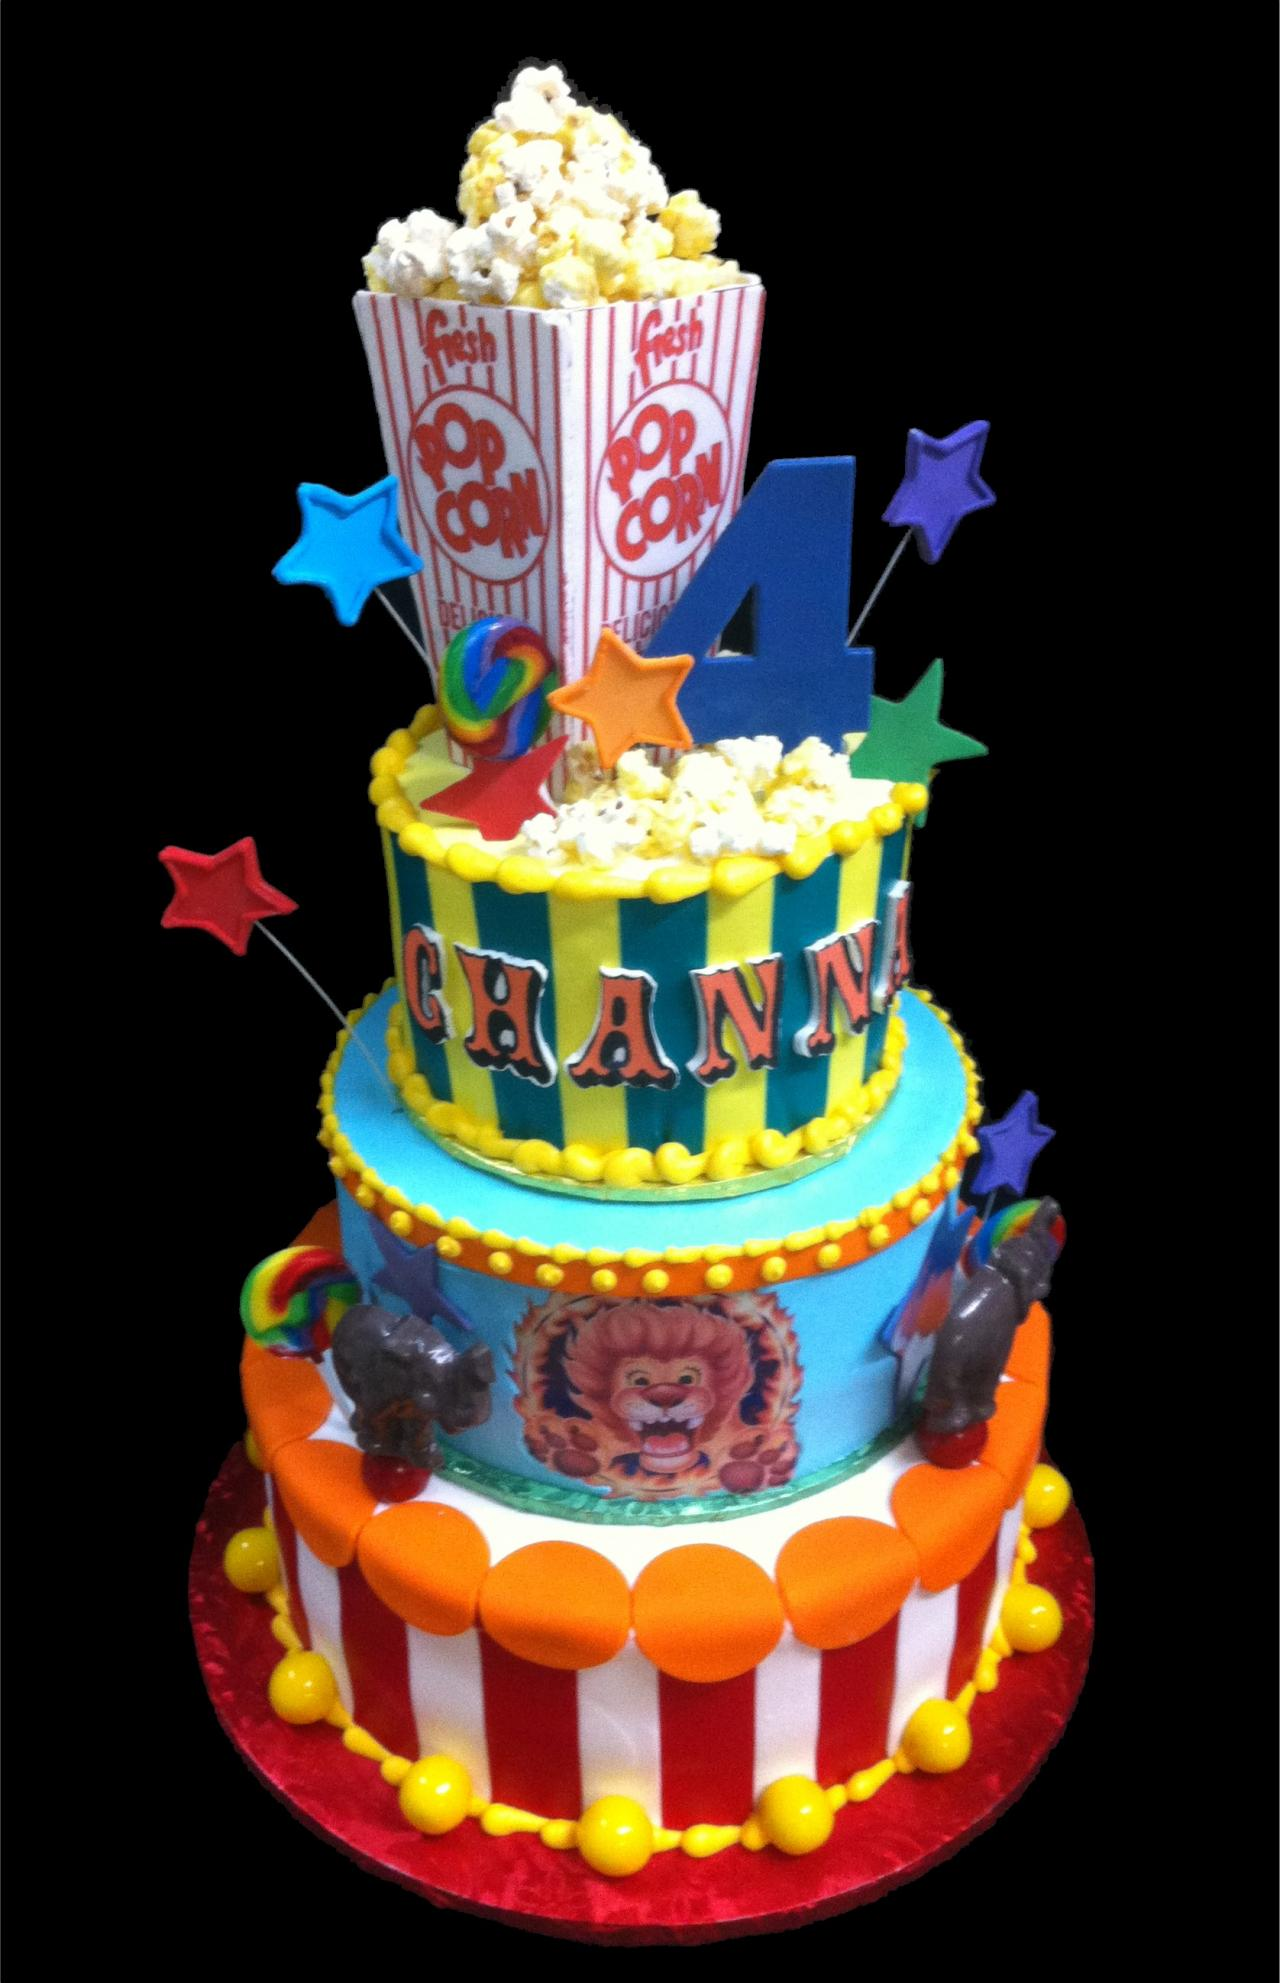 Circus Birthday Cake Yellow Blue And White Buttercream Iced 3 Round Tiers Decorated